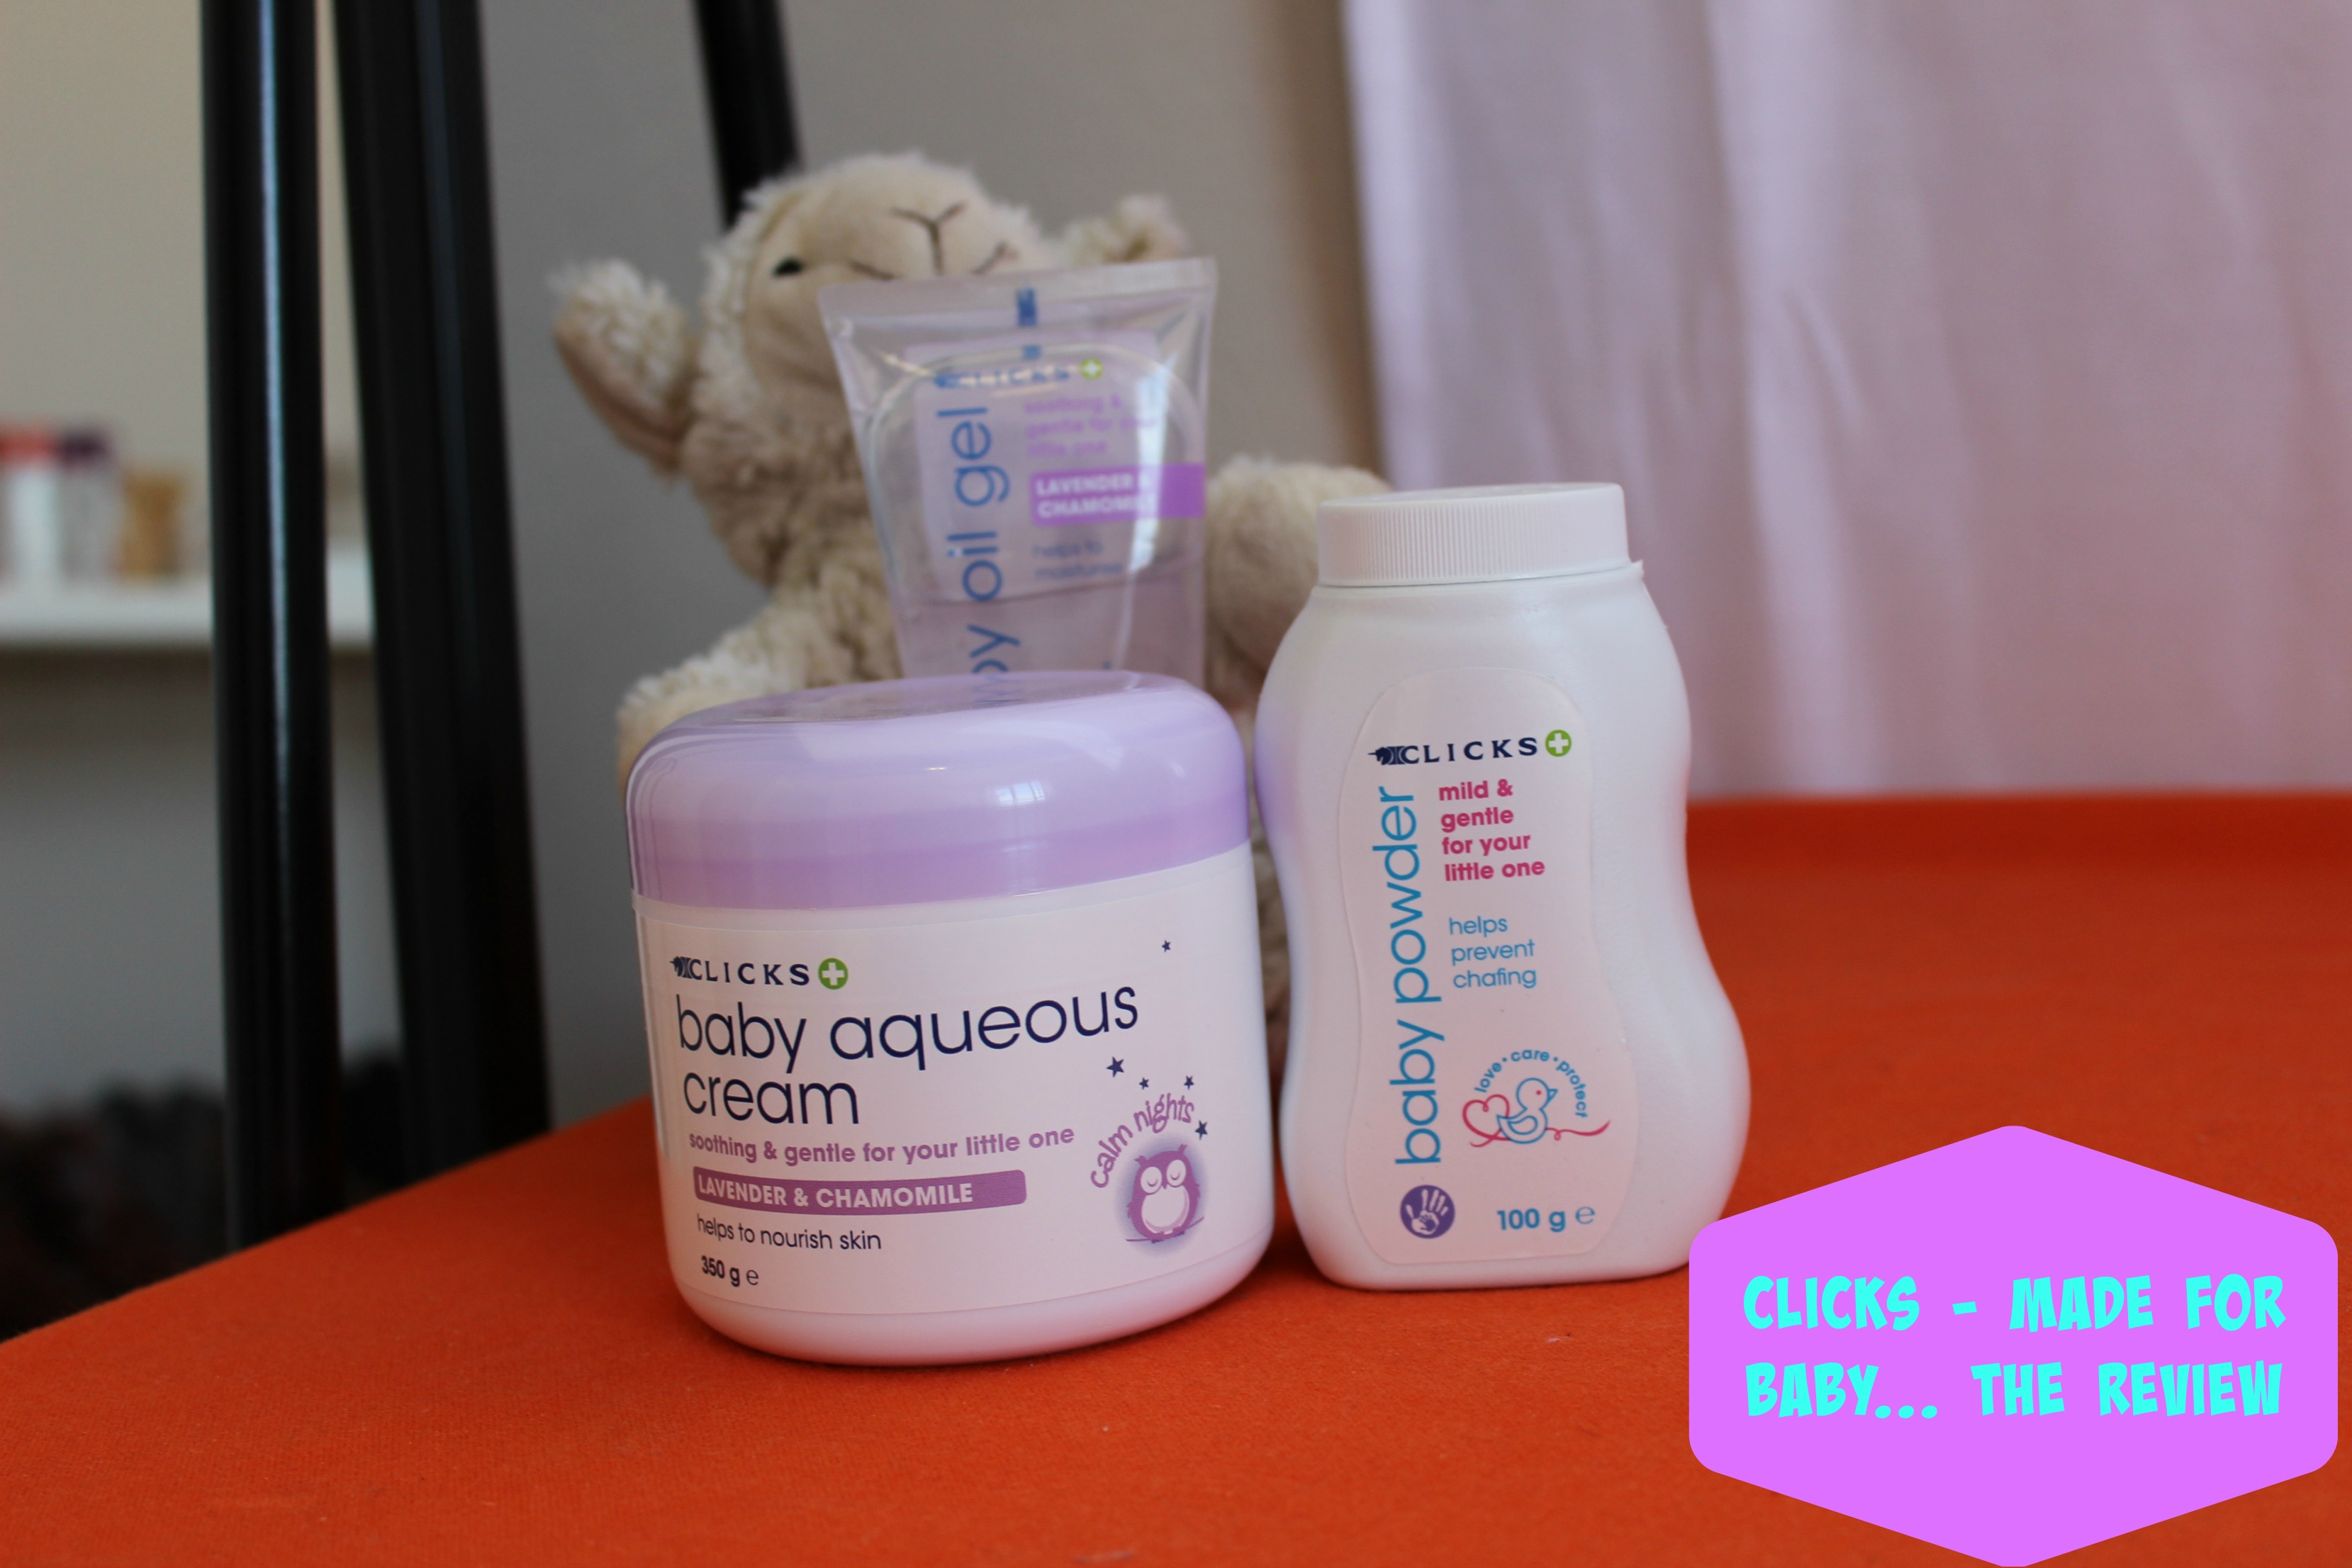 CLICKS MADE FOR BABY ||REVIEW